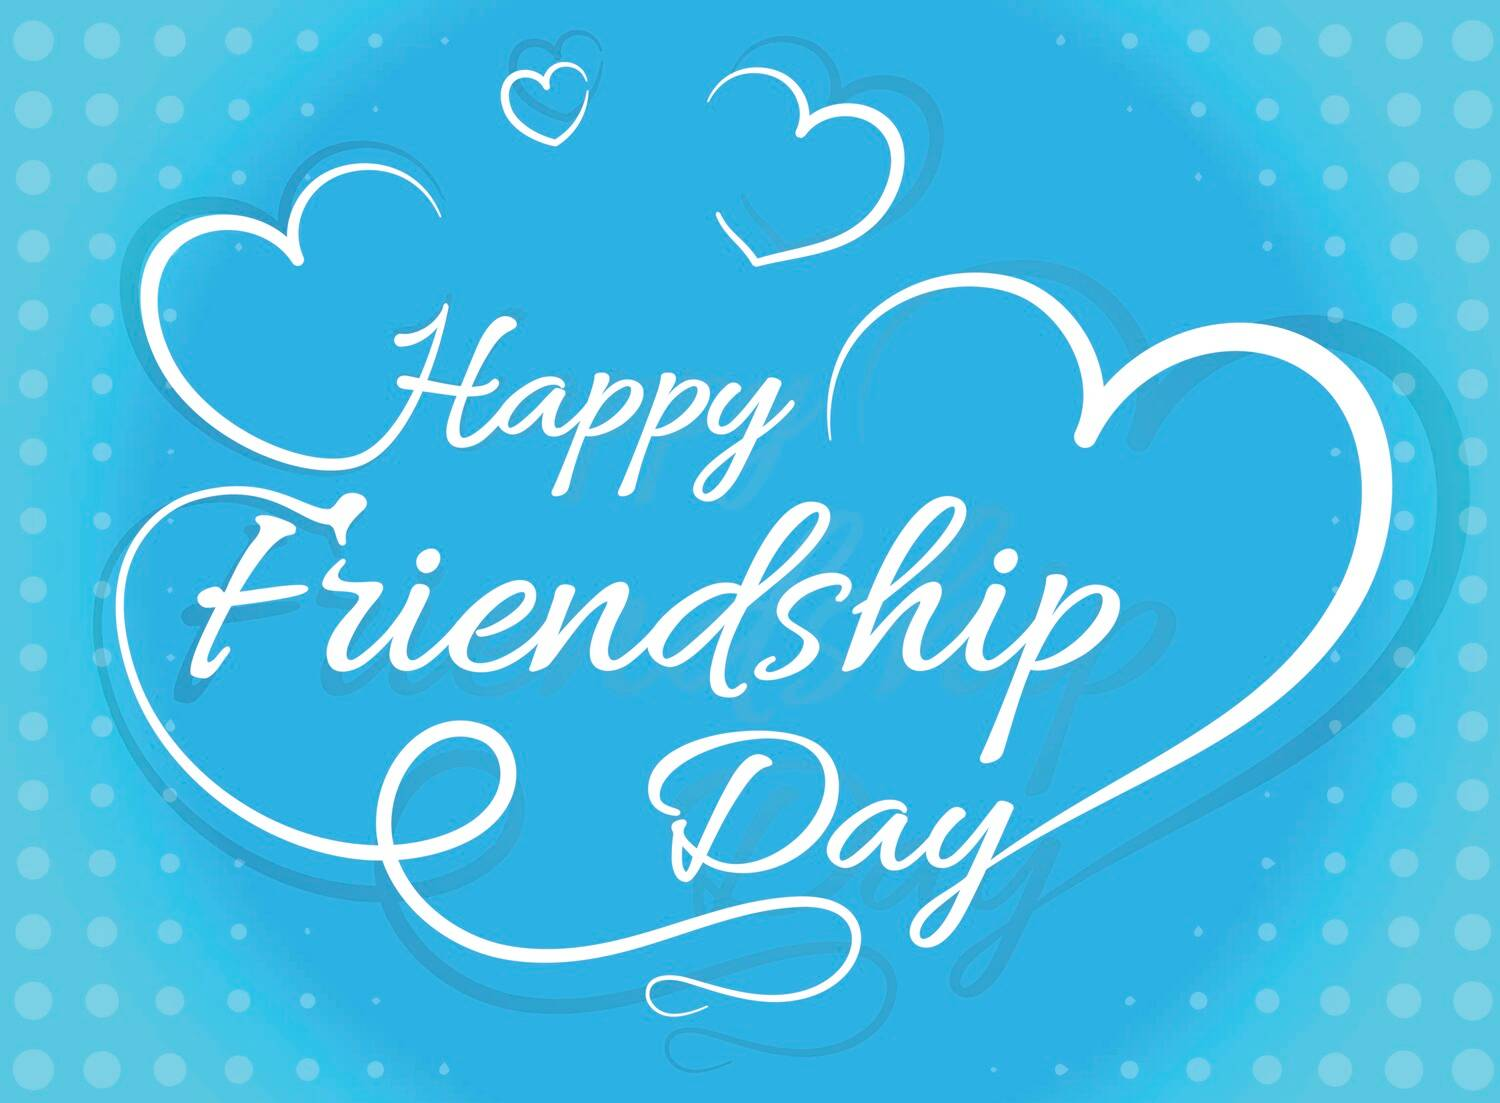 Happy Friendship Day: SMSes, WhatsApp, Facebook messages, greetings